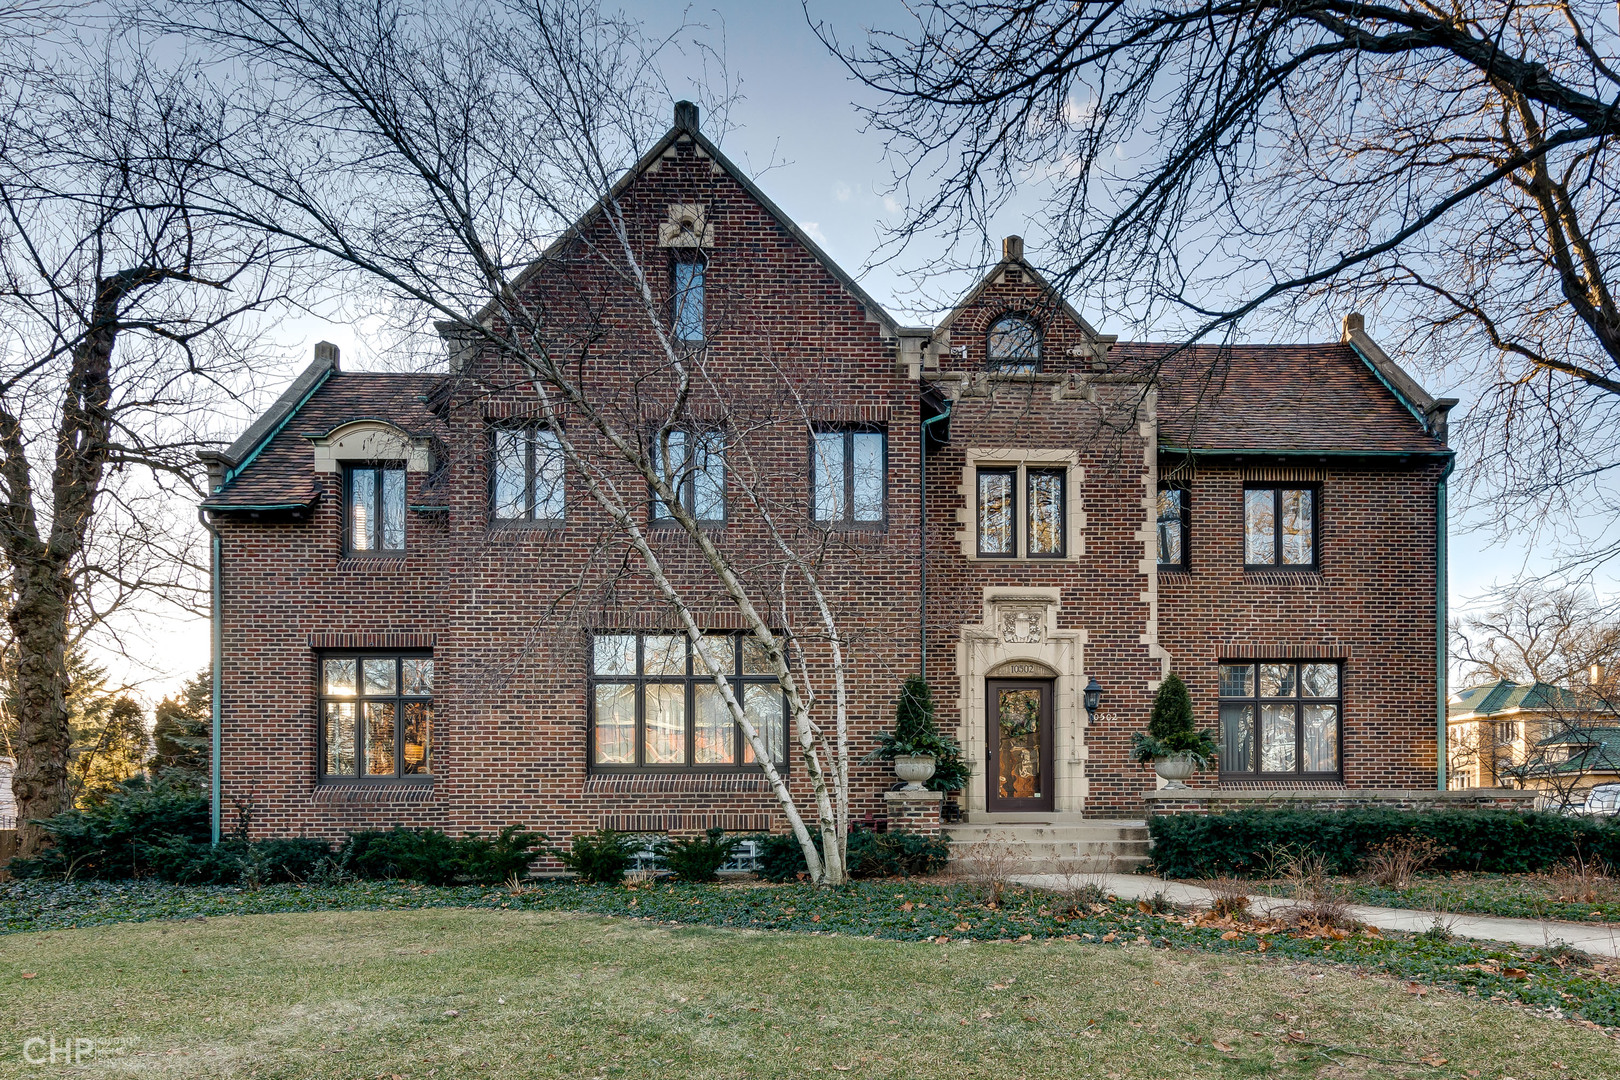 10502 SOUTH SEELEY AVENUE, CHICAGO, IL 60643